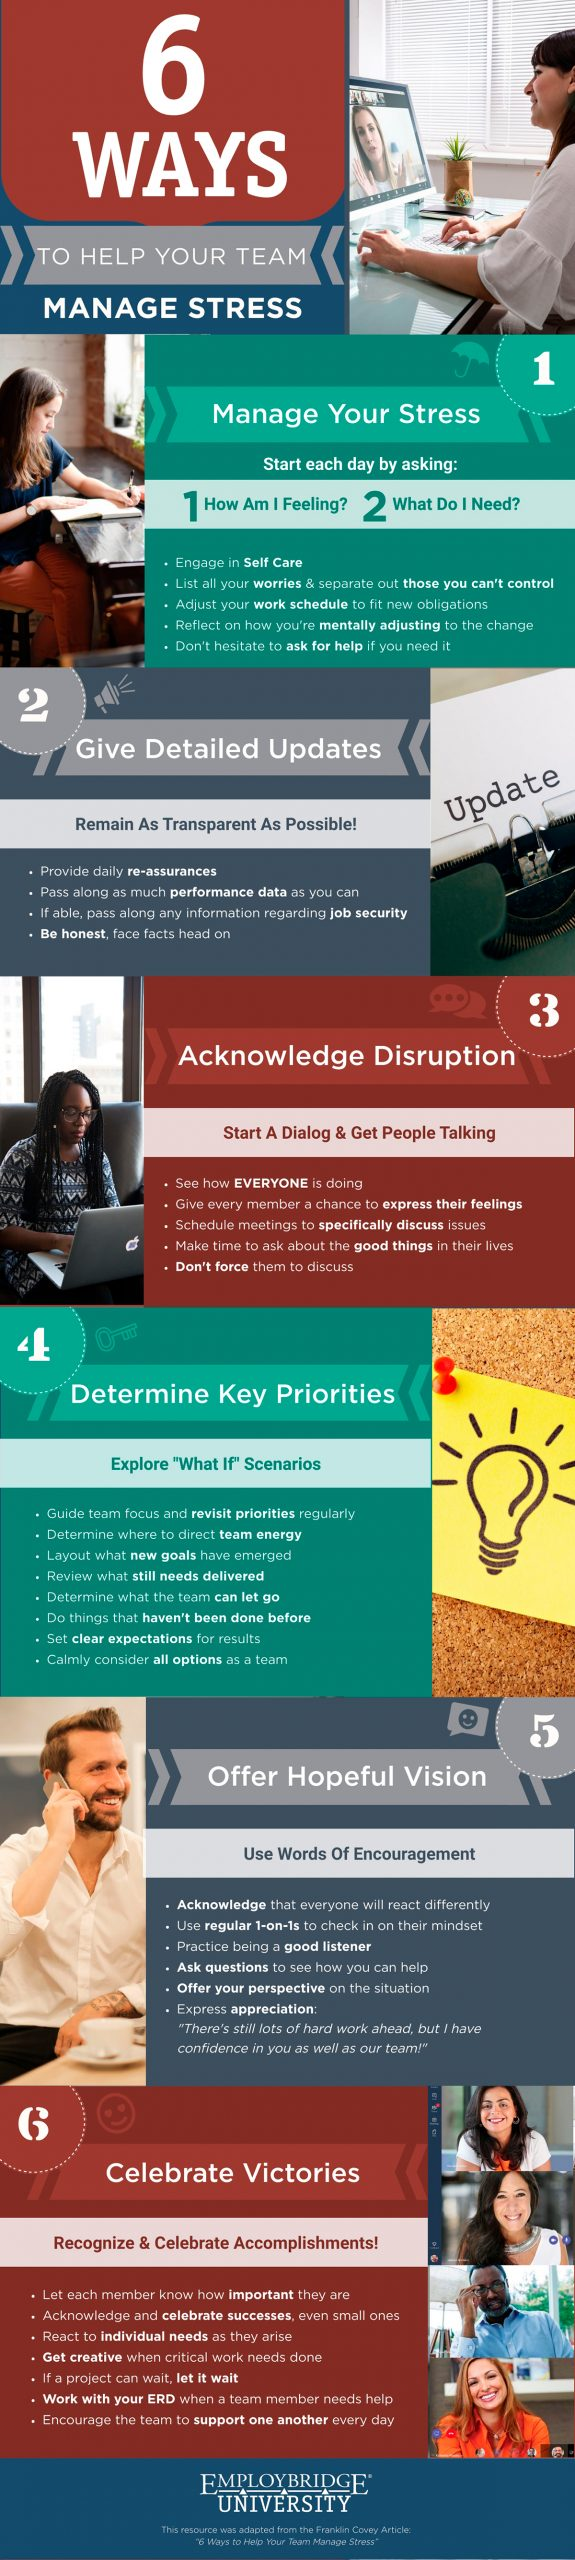 Infographic sharing how to help your team manage stress.